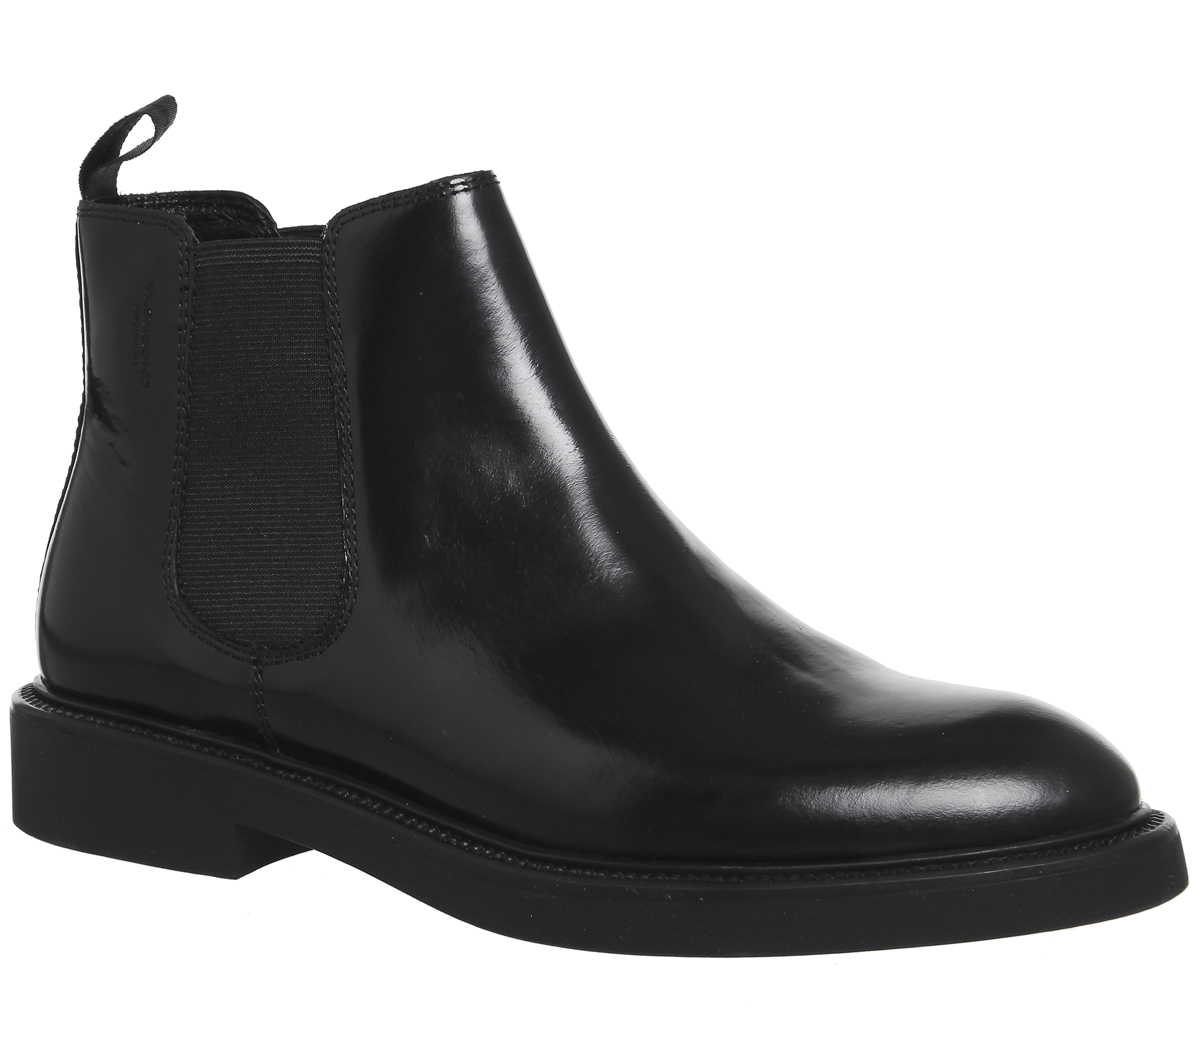 bb8f1d66282 Sentinel Womens Vagabond Alex Chelsea Boots BLACK POLISHED Boots